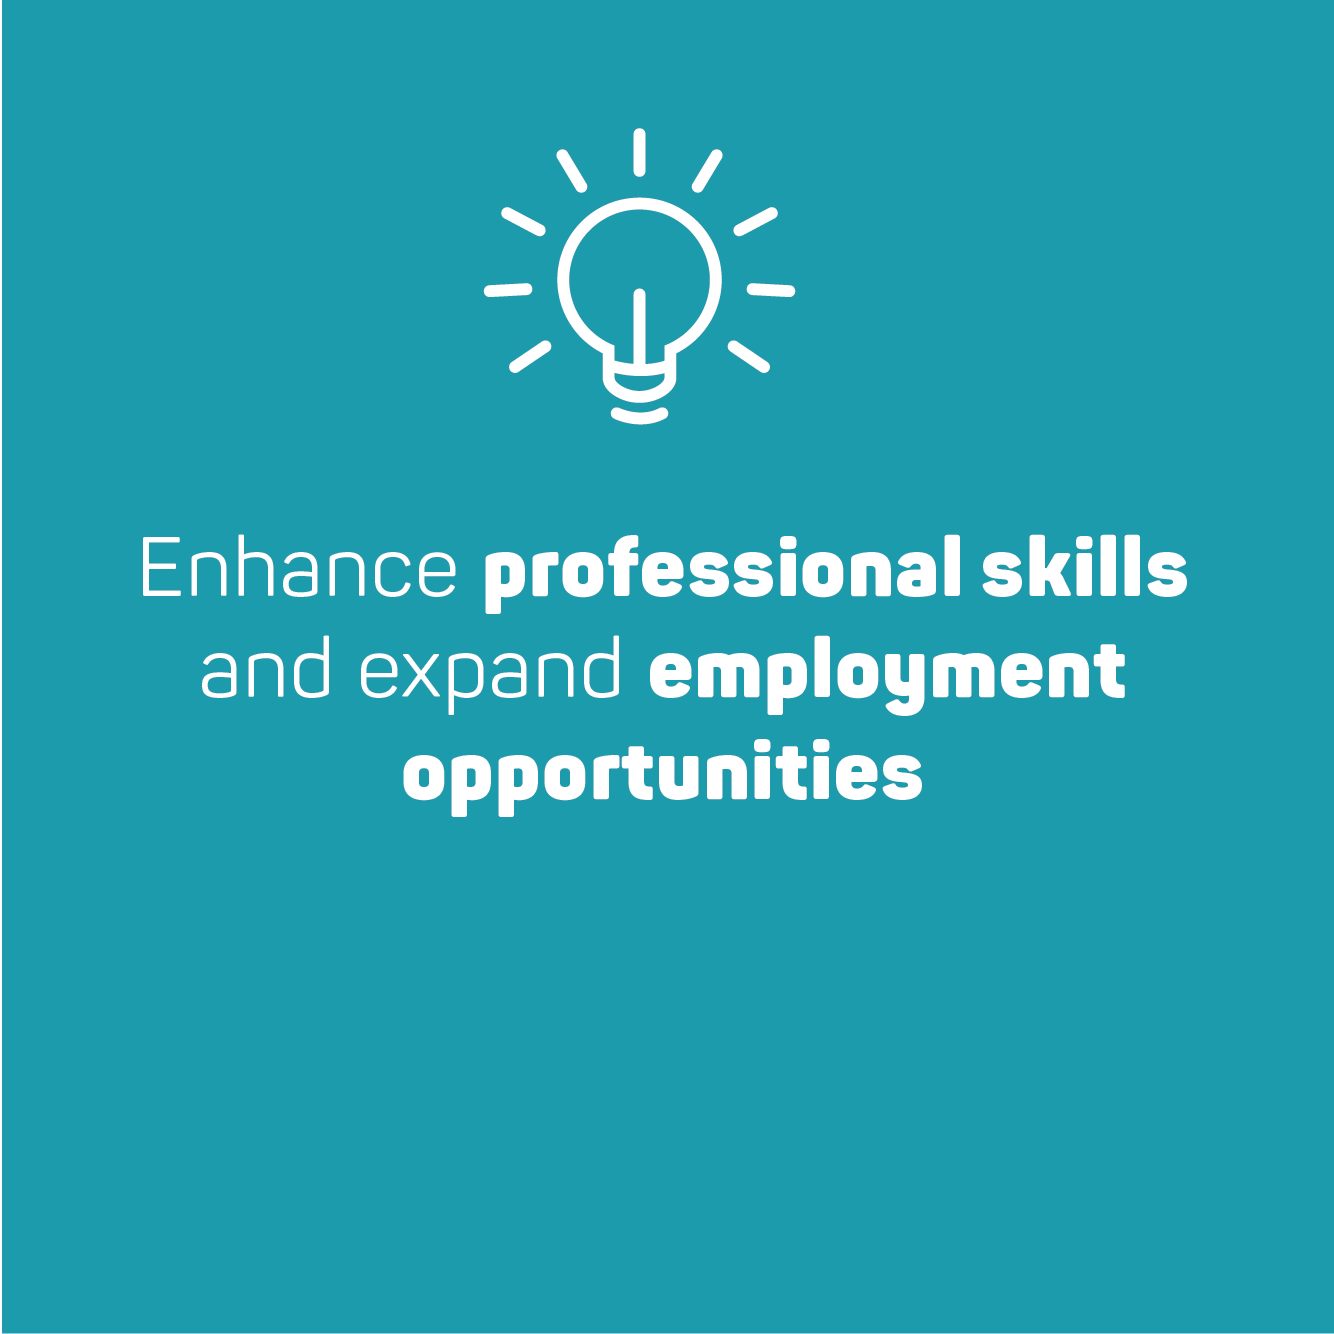 enhance professional skills and expand employment opportunities